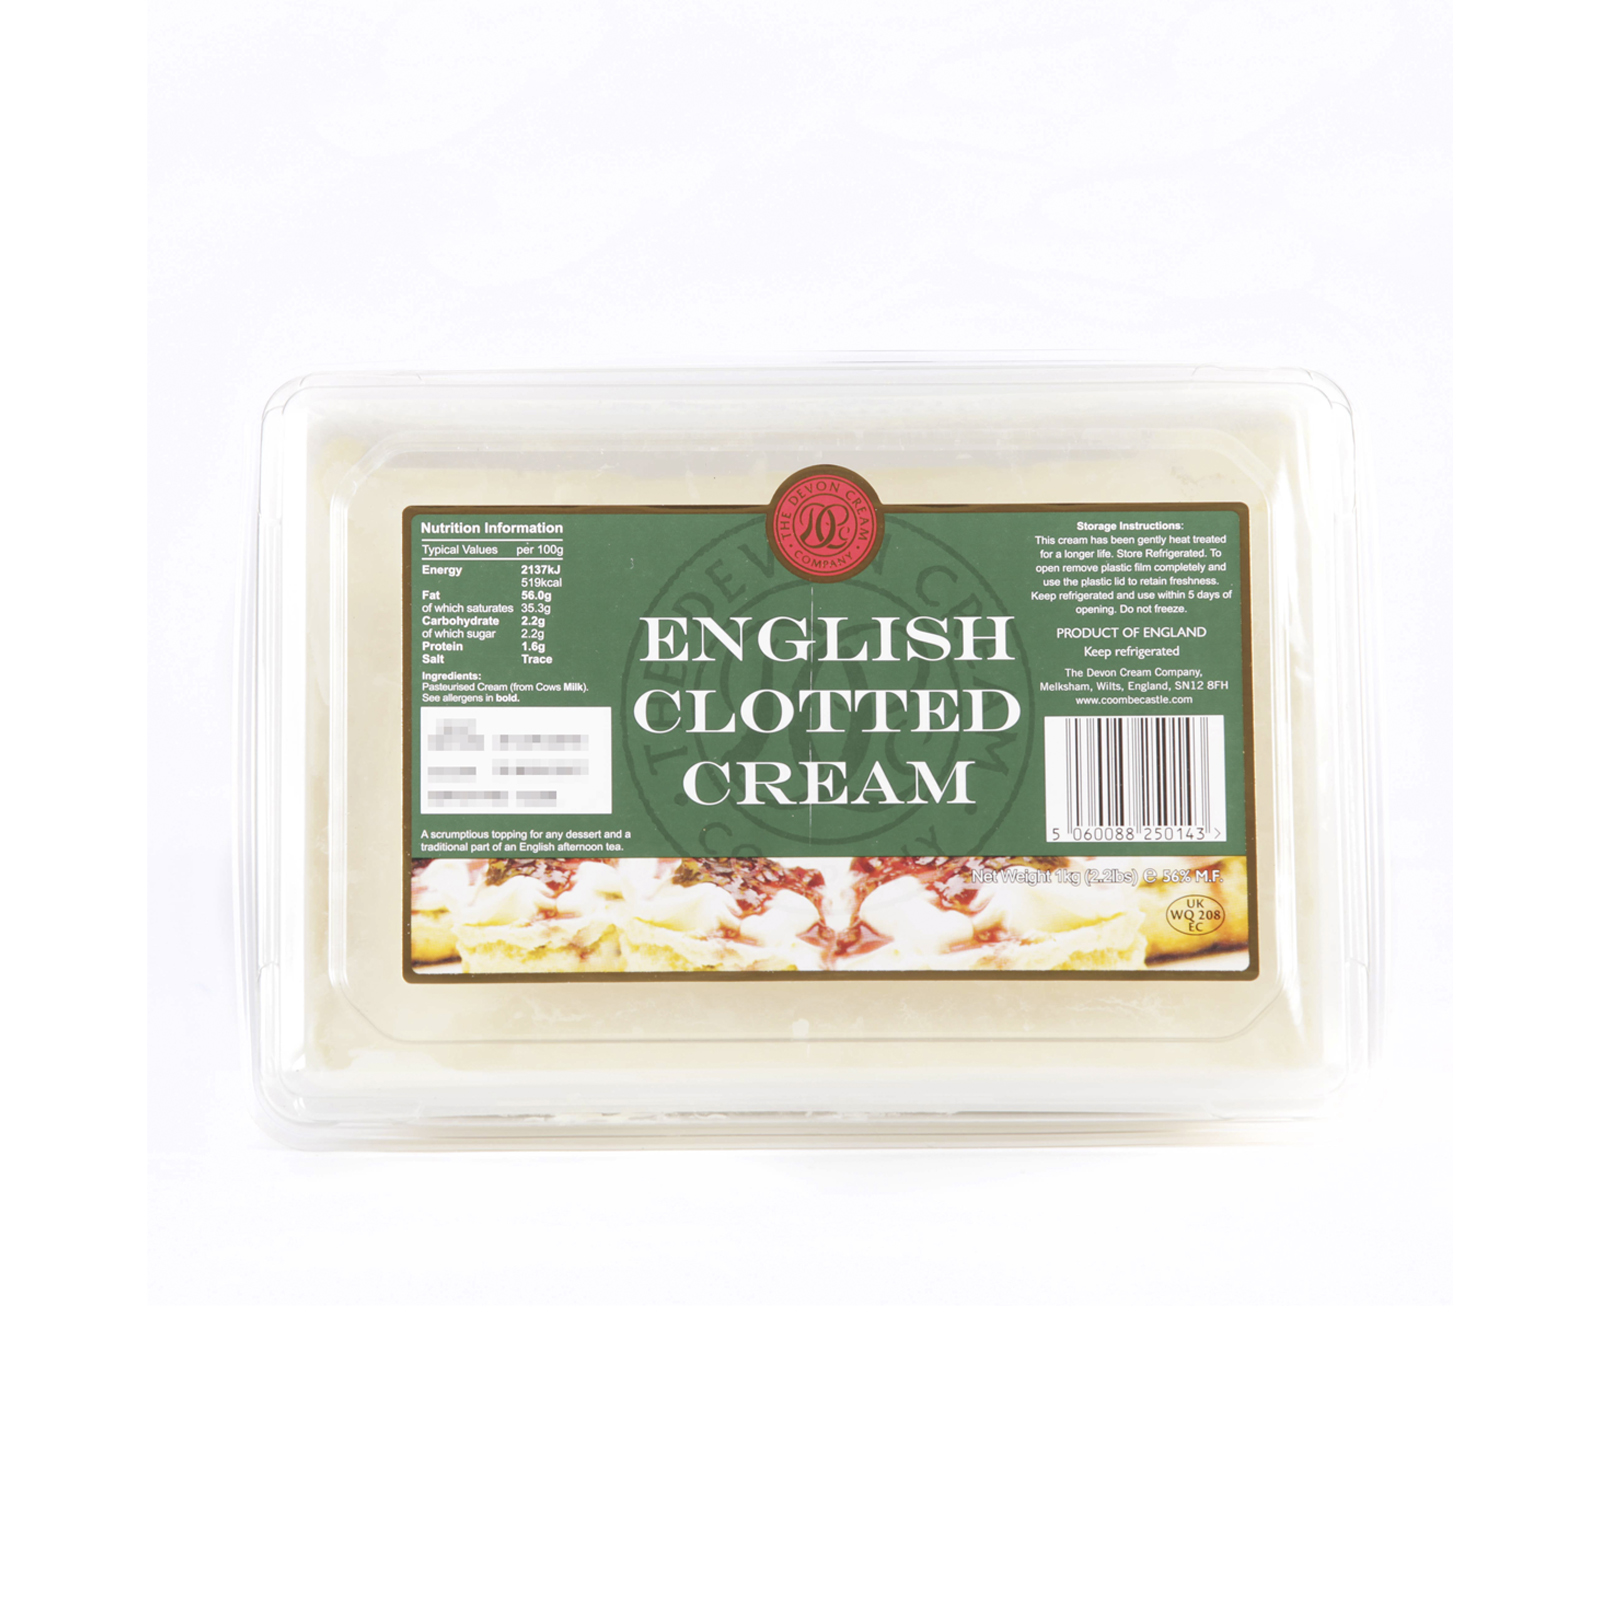 English Clotted Cream 56% Fat – 1 kg